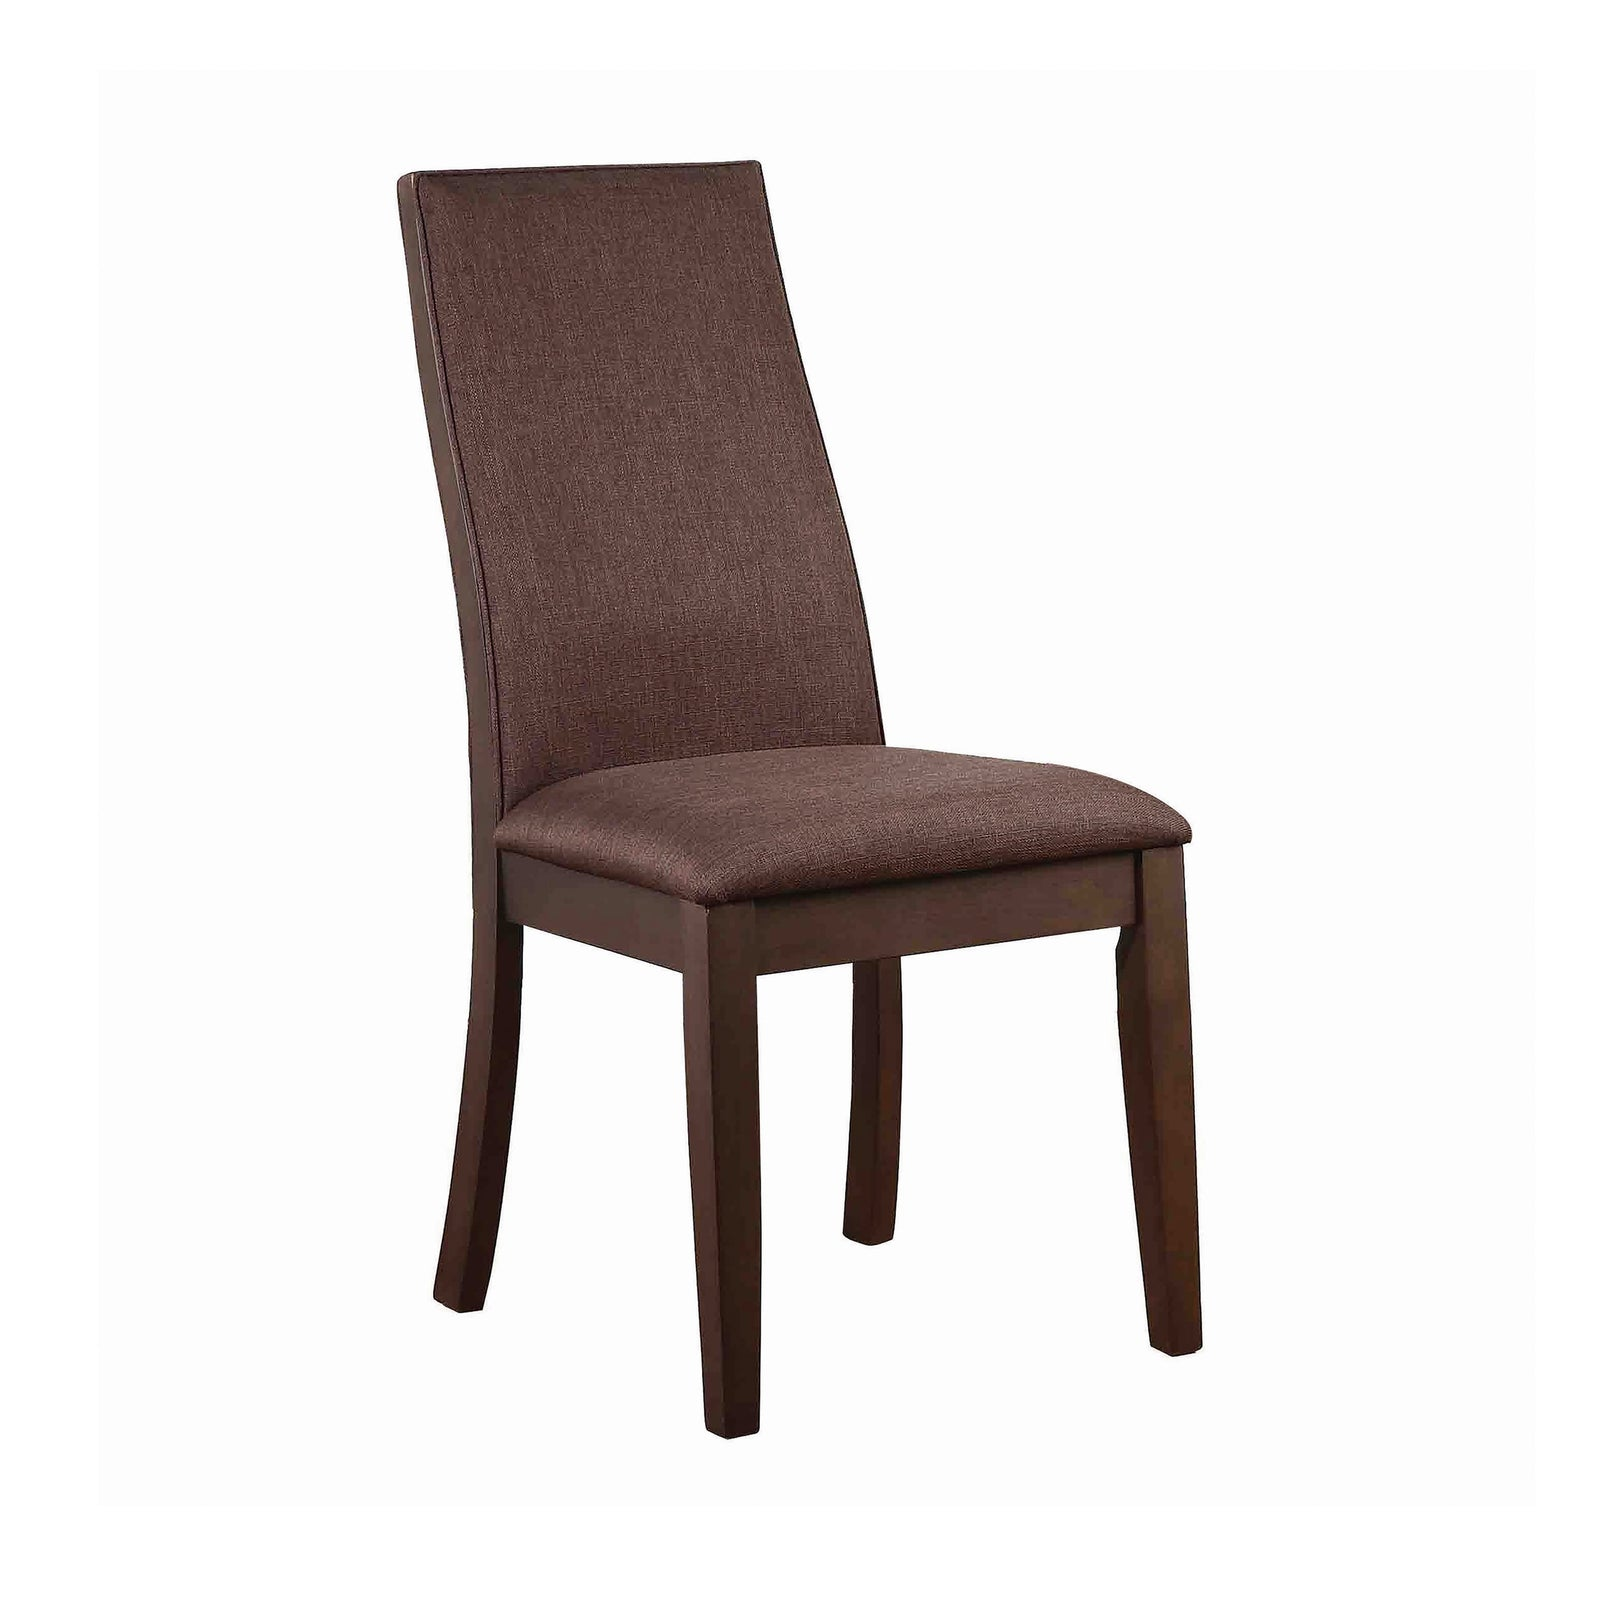 Coaster 106582 | Armless Upholstered Side Chairs Espresso Set Of 2